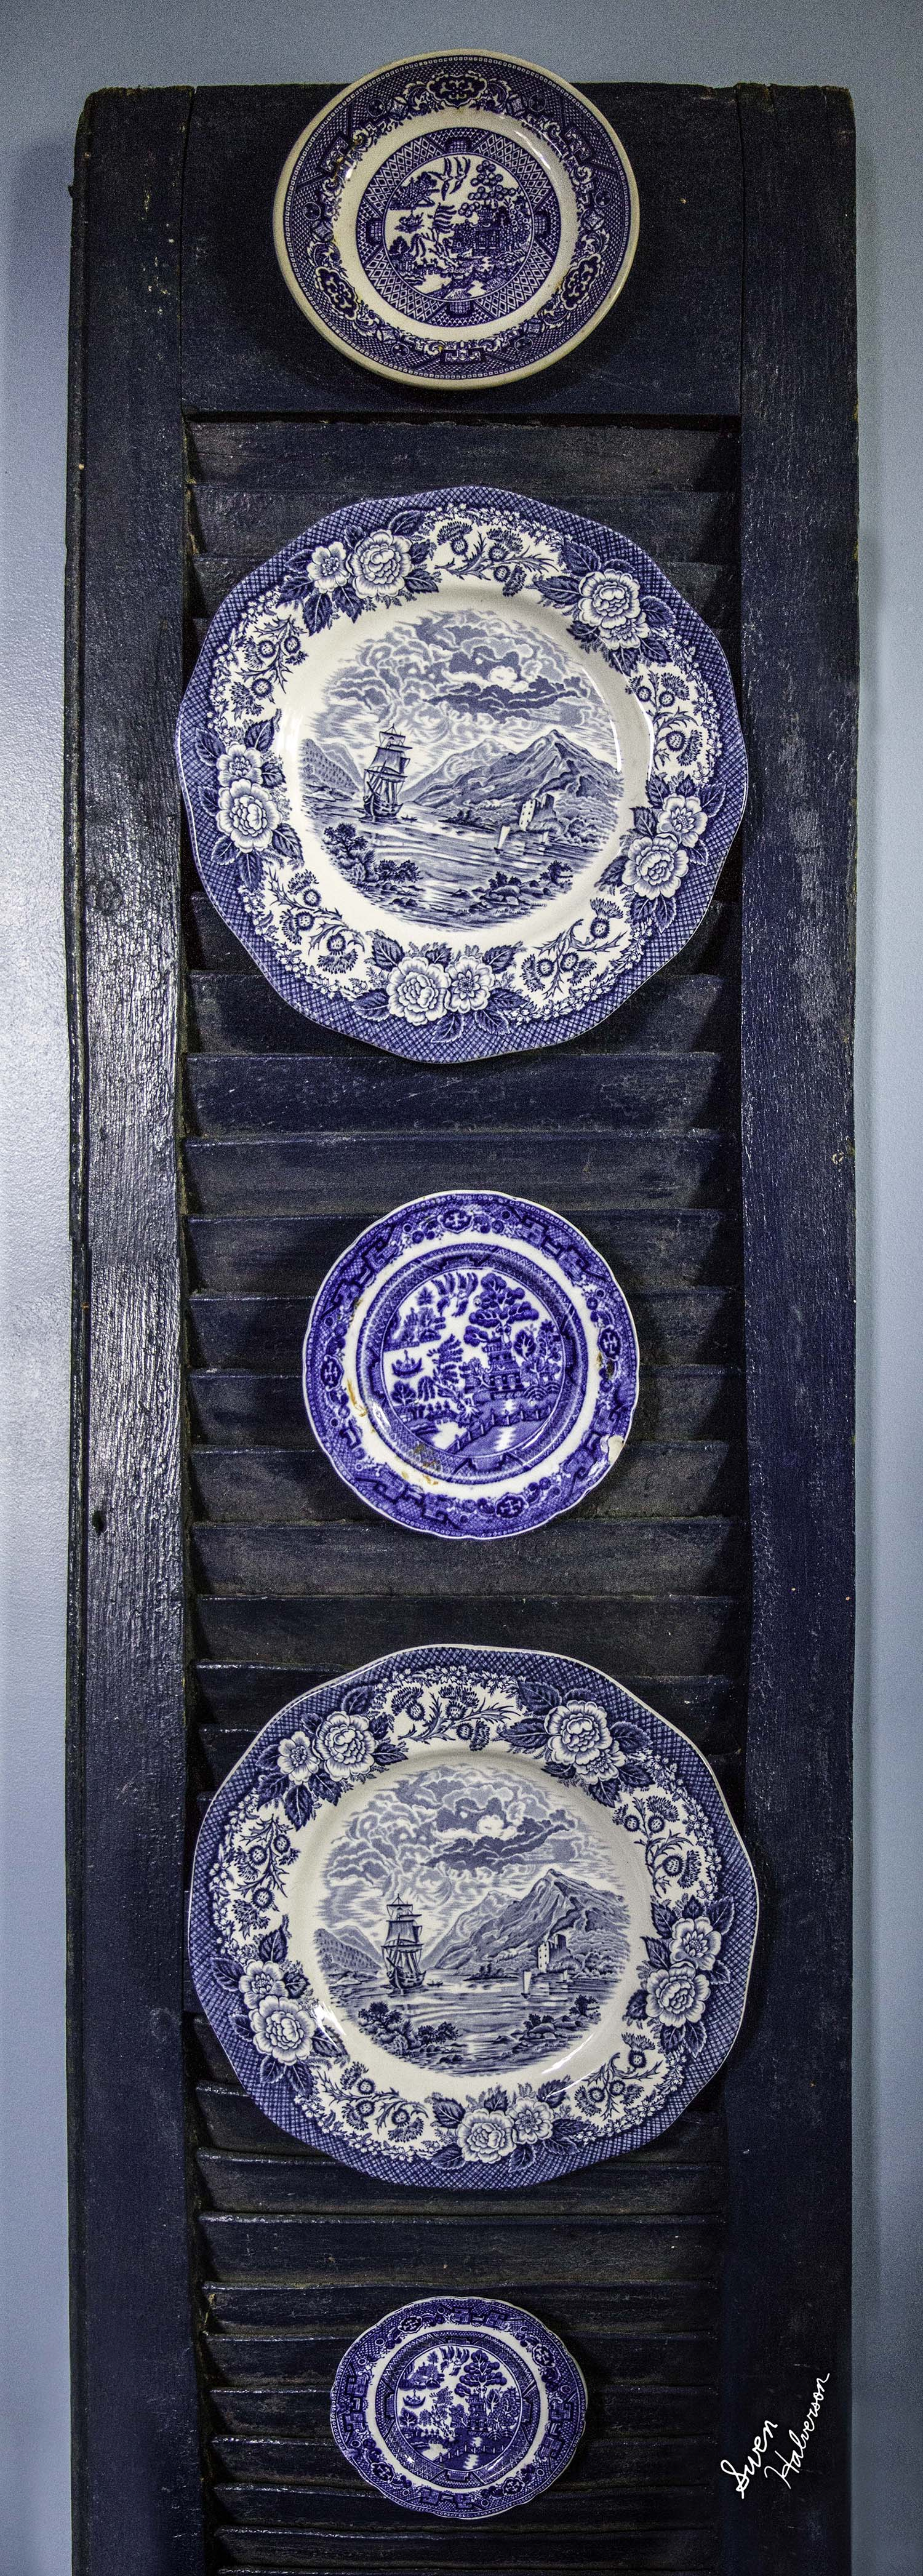 Theme: Melodic Title: 5 Blue Plates On A Wall